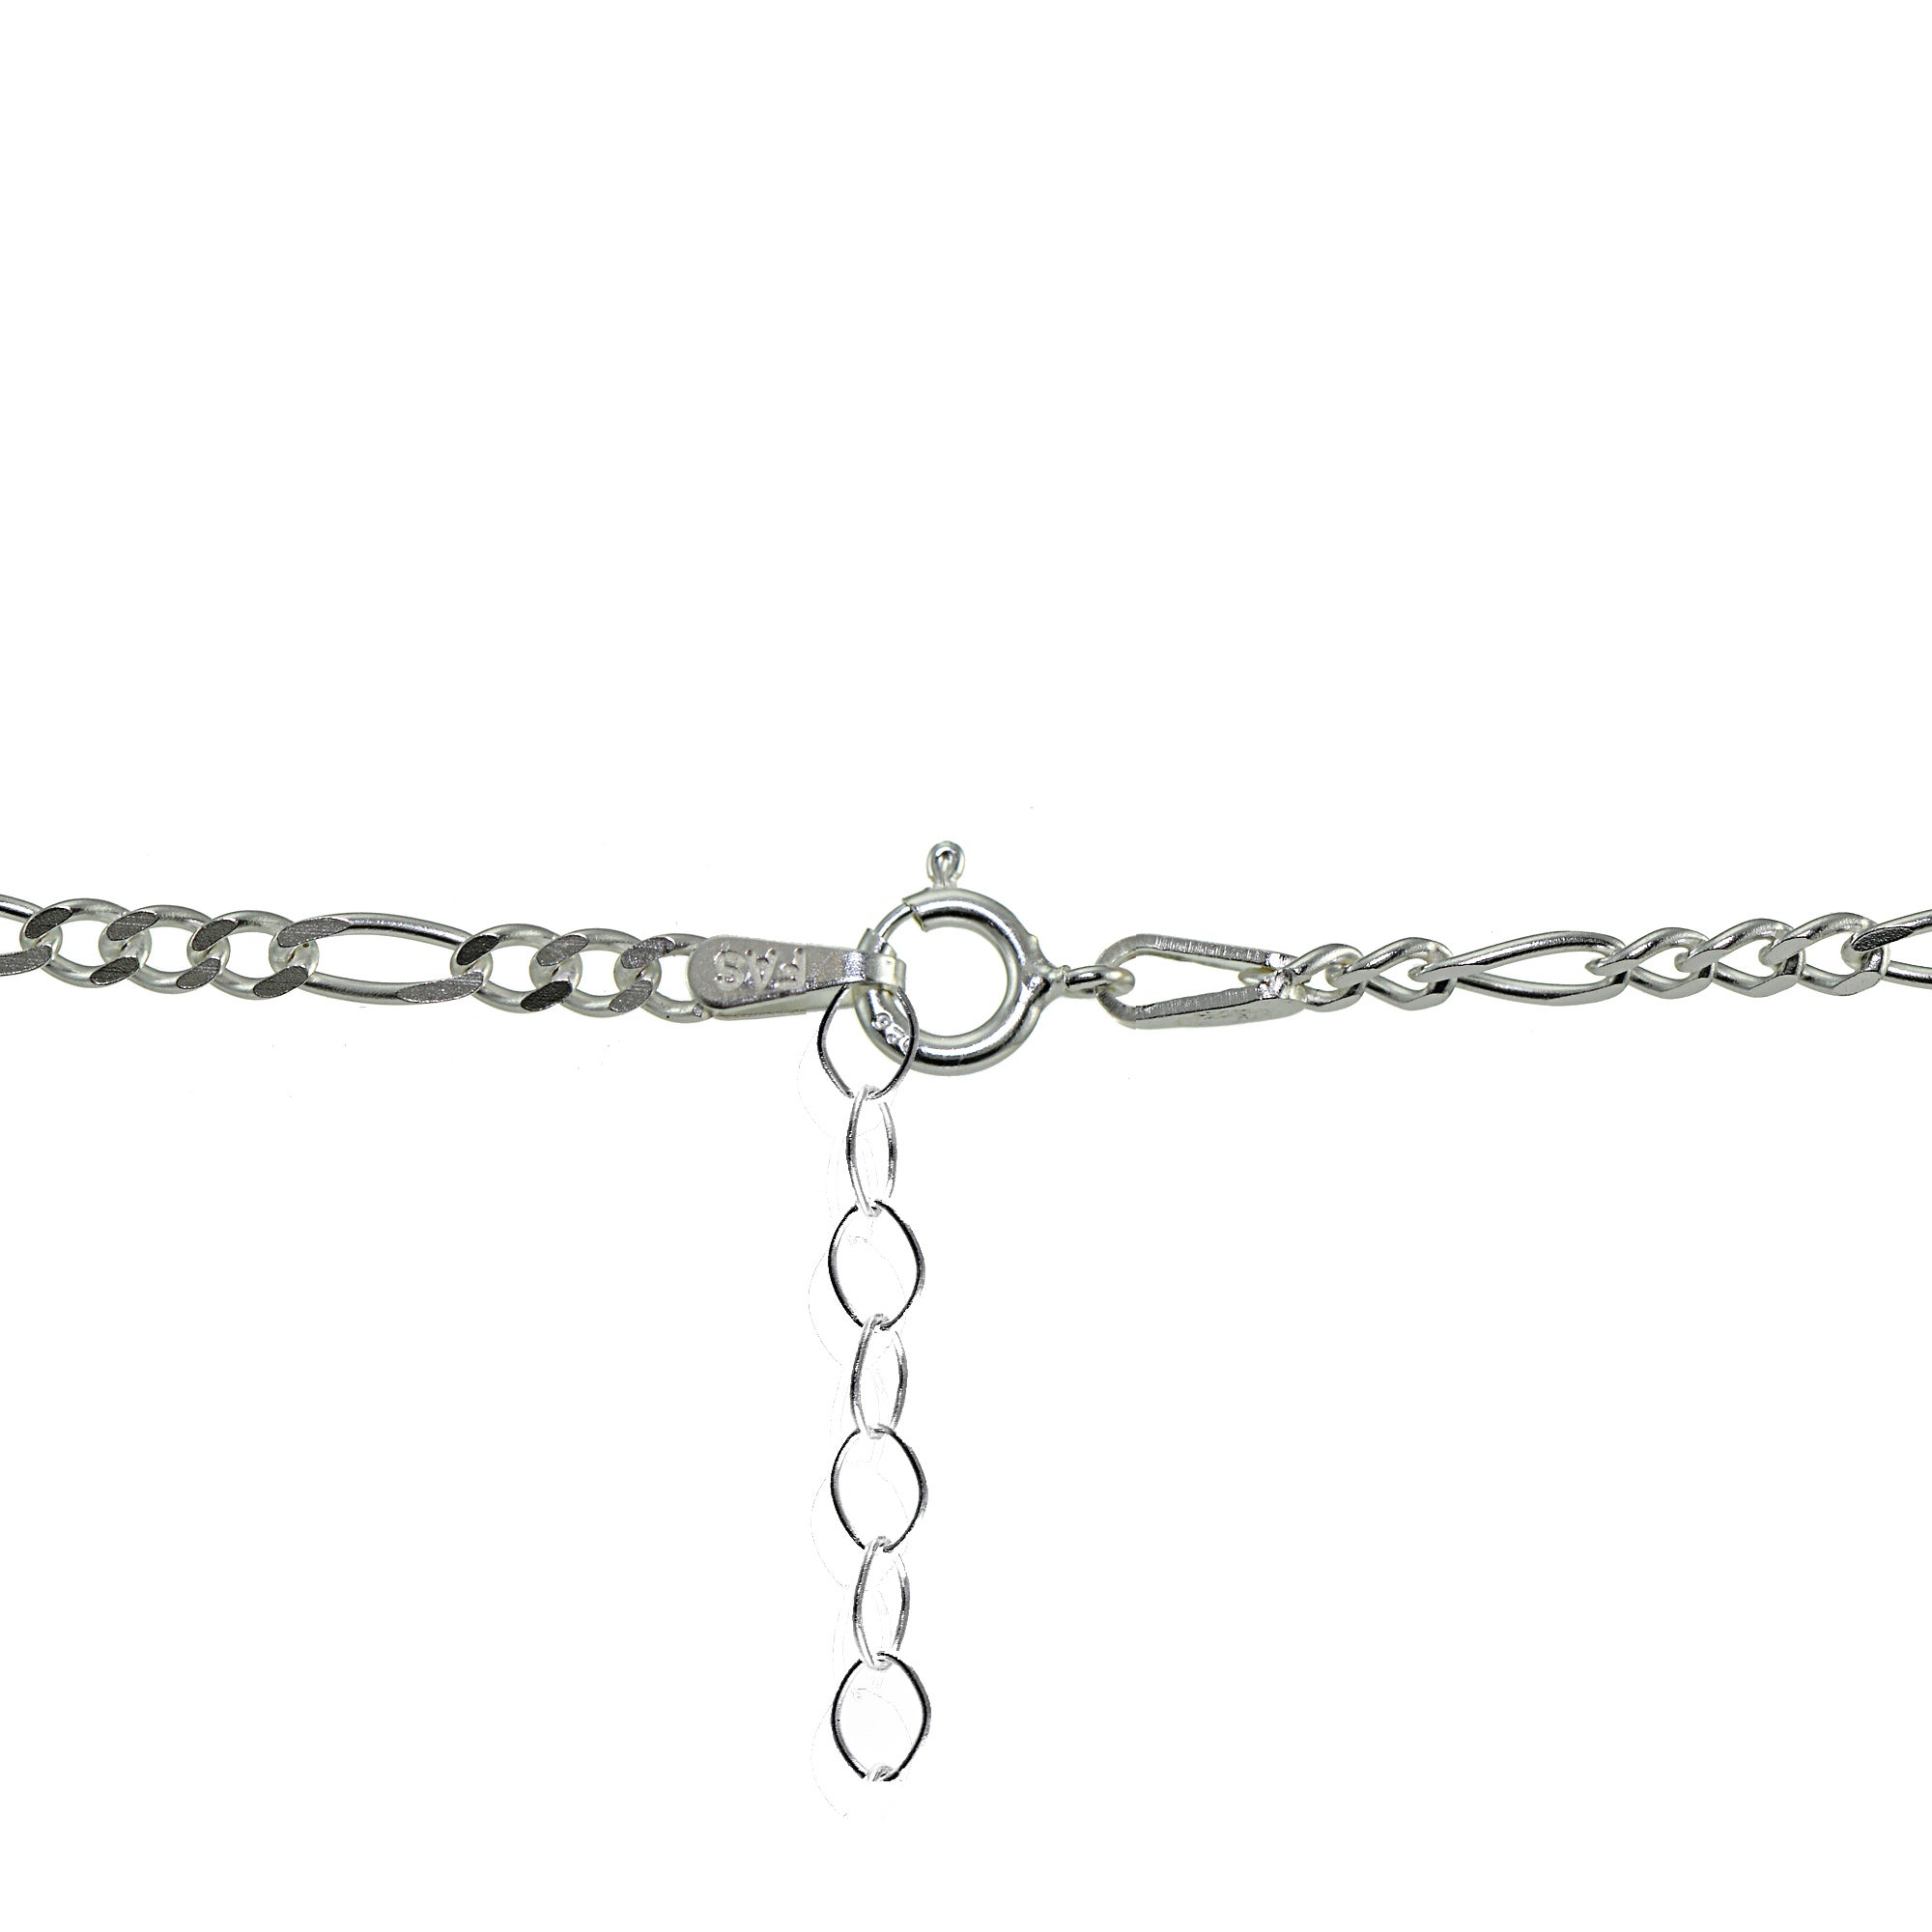 anklet fancy bracelet charms with charm links round sterling heart padlock silver